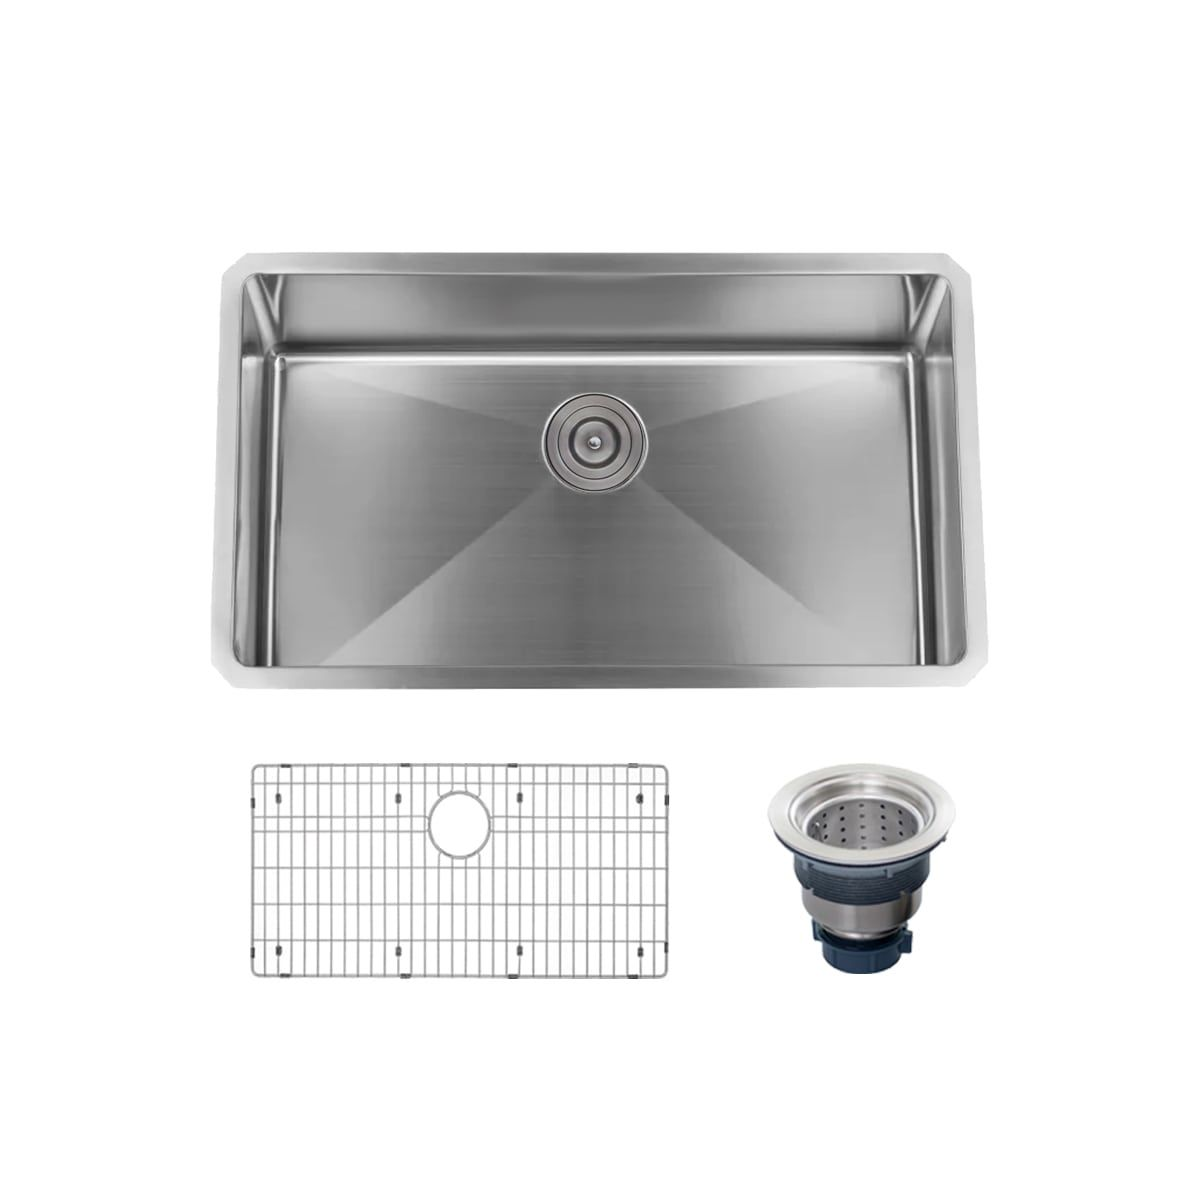 Miseno Mss3018sr Sink Stainless Sink Double Bowl Sink